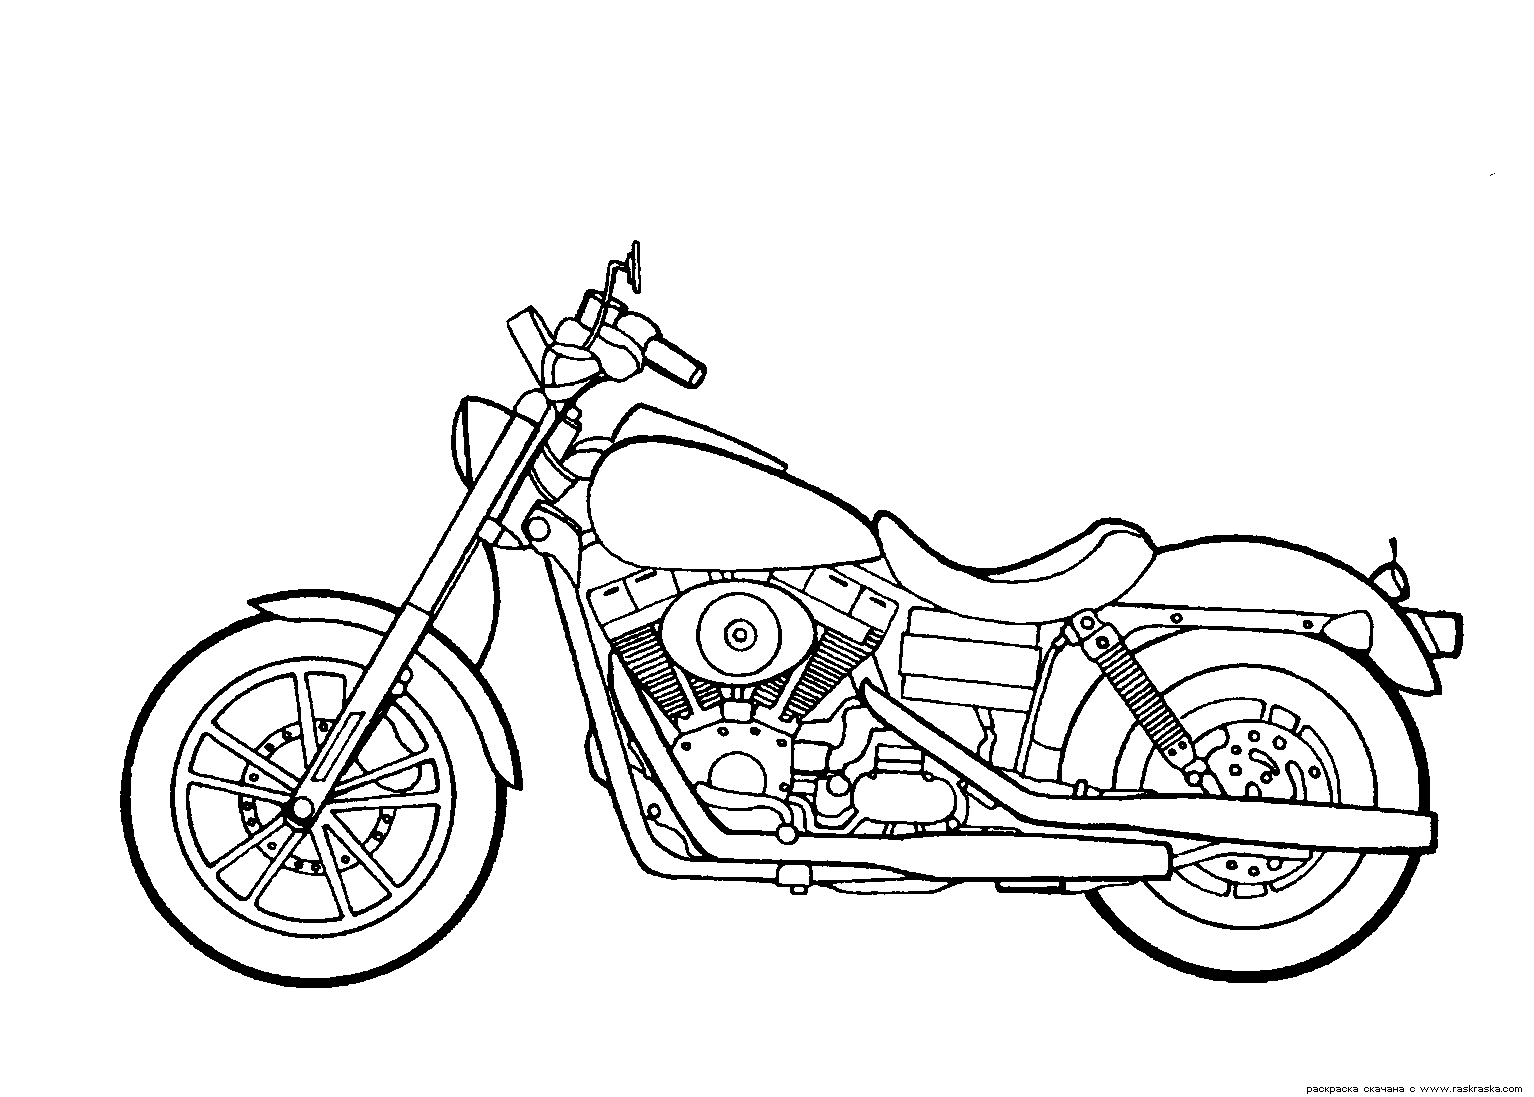 Line Drawing Motorcycle : Motorcycles harley davidson dyna super glide